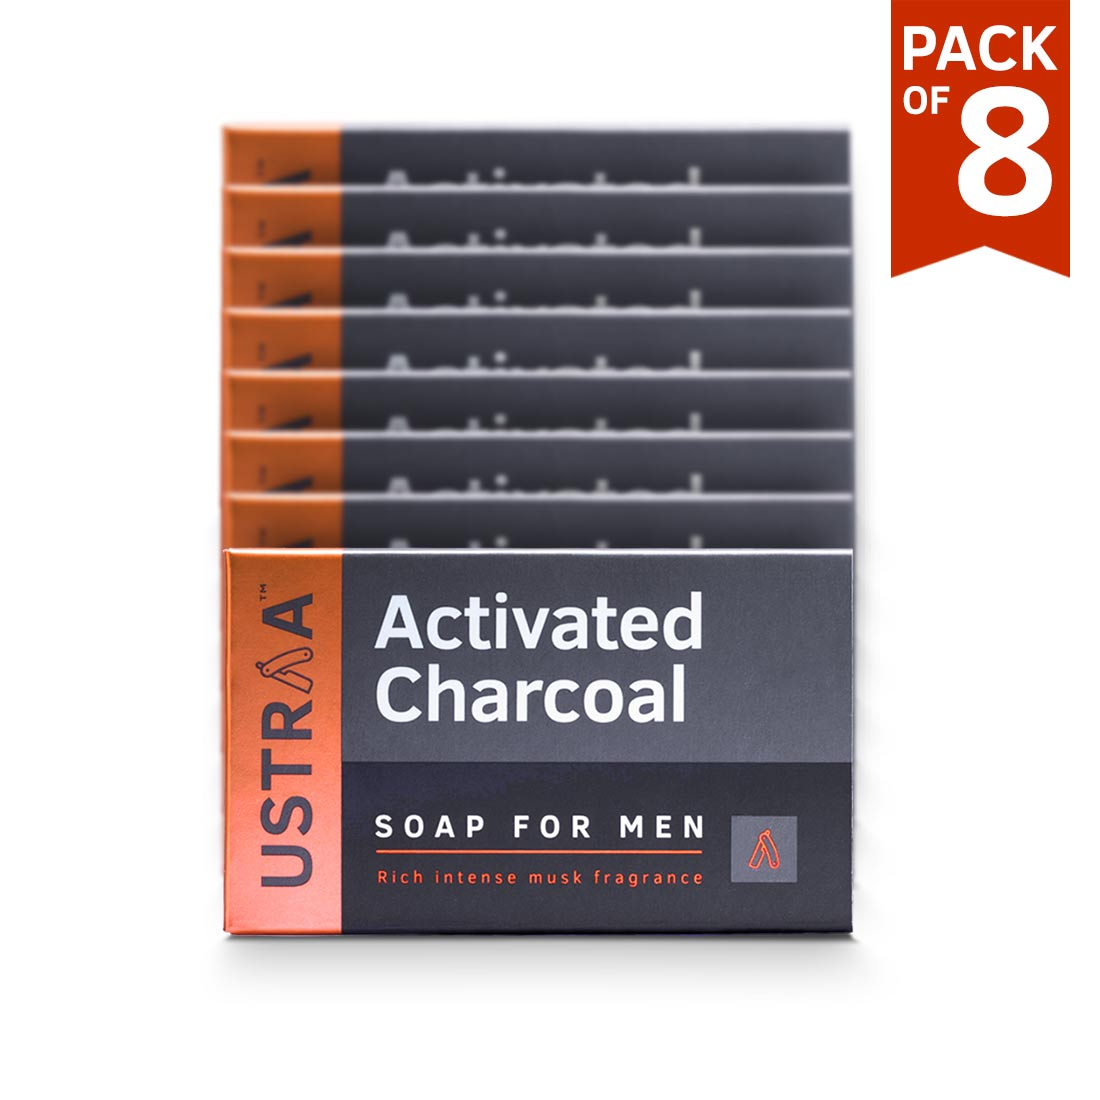 Ustraa Deo Soap For Men with Activated Charcoal, 100 g (Pack of 8)